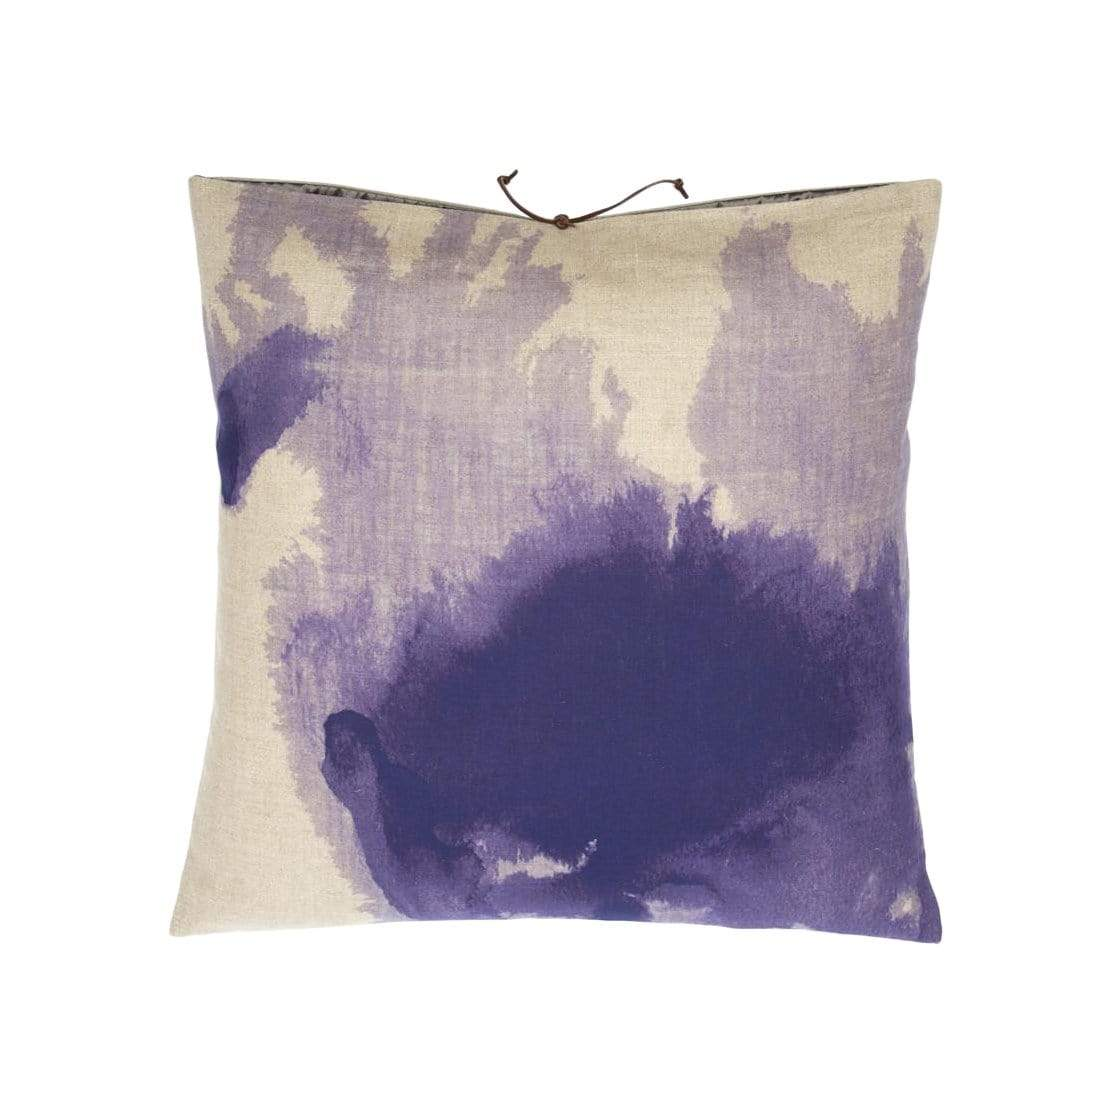 Michele Varian Cushions & Throws Default Printed Linen Pillow Wash Lilac